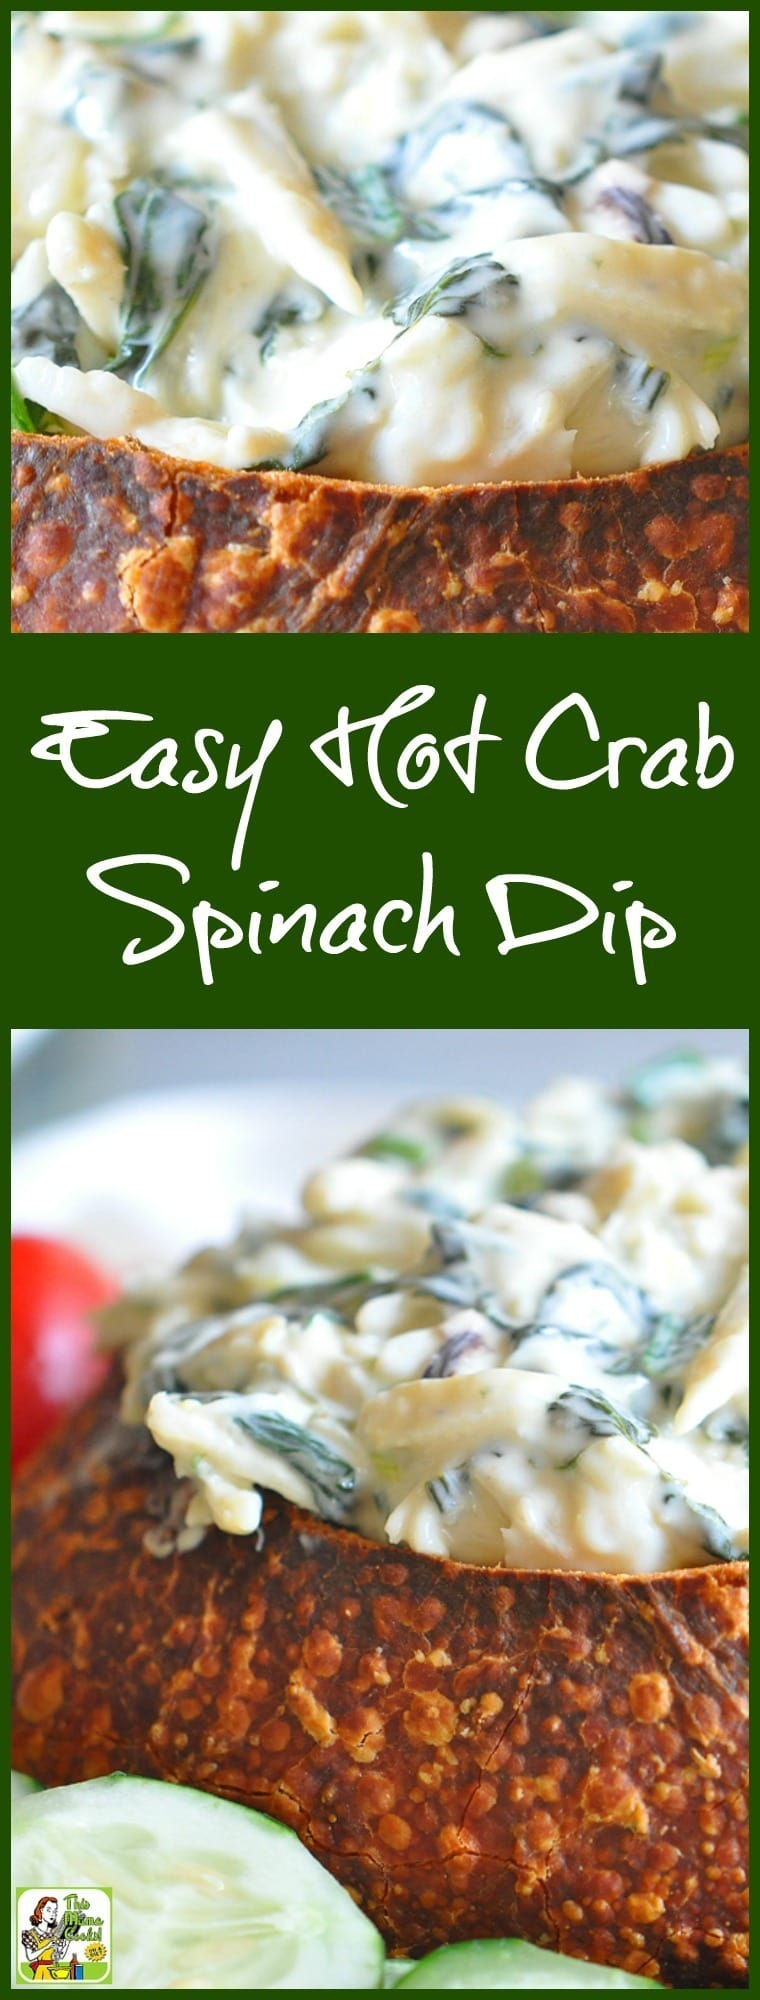 Need a healthy dip appetizer recipe for your party? Try this Easy Hot Crab Spinach Dip Baked in French Bread recipe! Comes with a gluten free option. #recipes #easy #recipeoftheday #glutenfree #easyrecipe #easyrecipes #glutenfreerecipes #dip #partyfood #appetizers #appetizerseasy